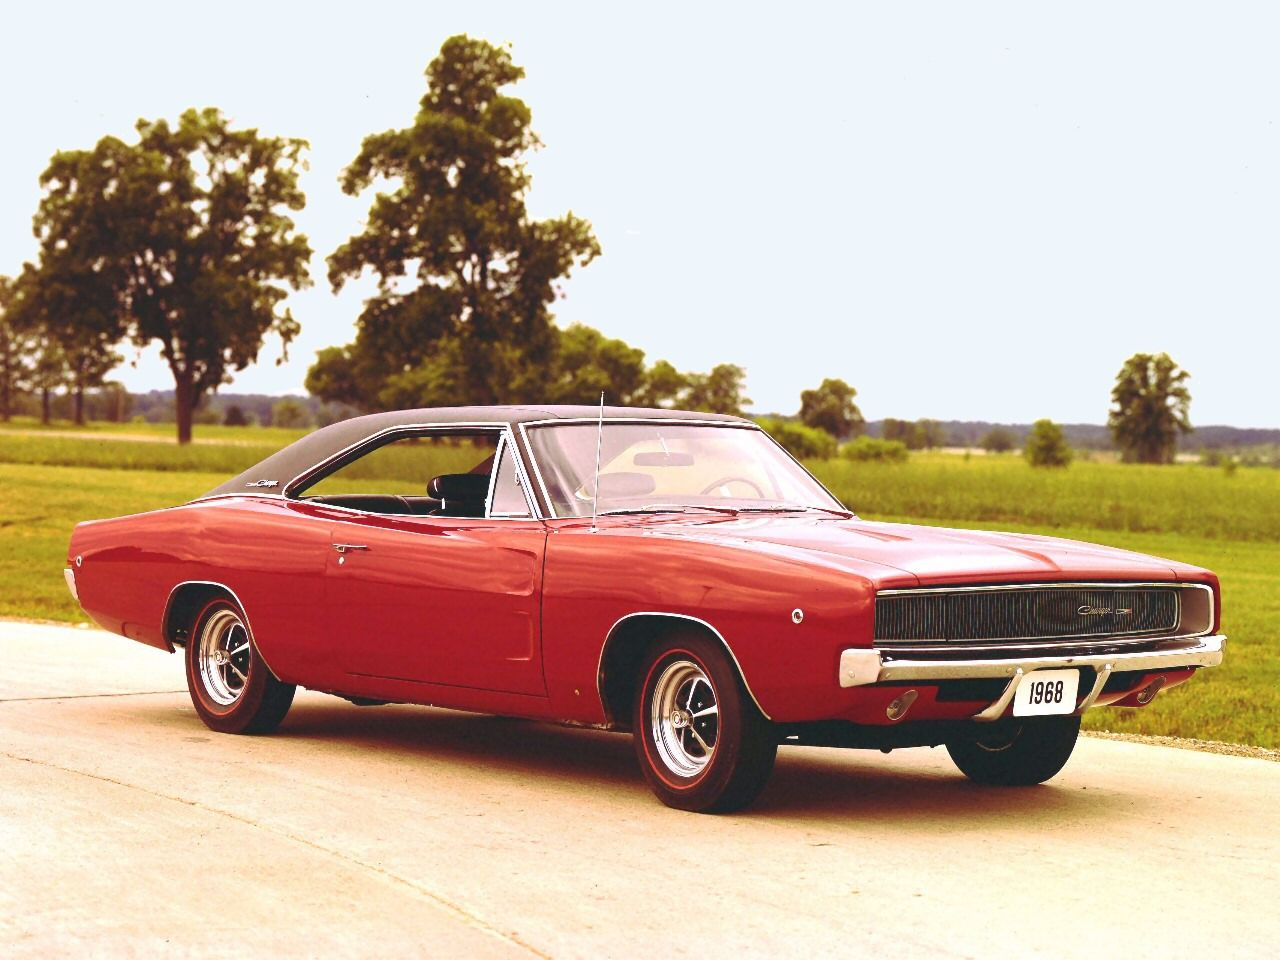 dodge charger pictures all years - Google Search | Dodge Charger ...